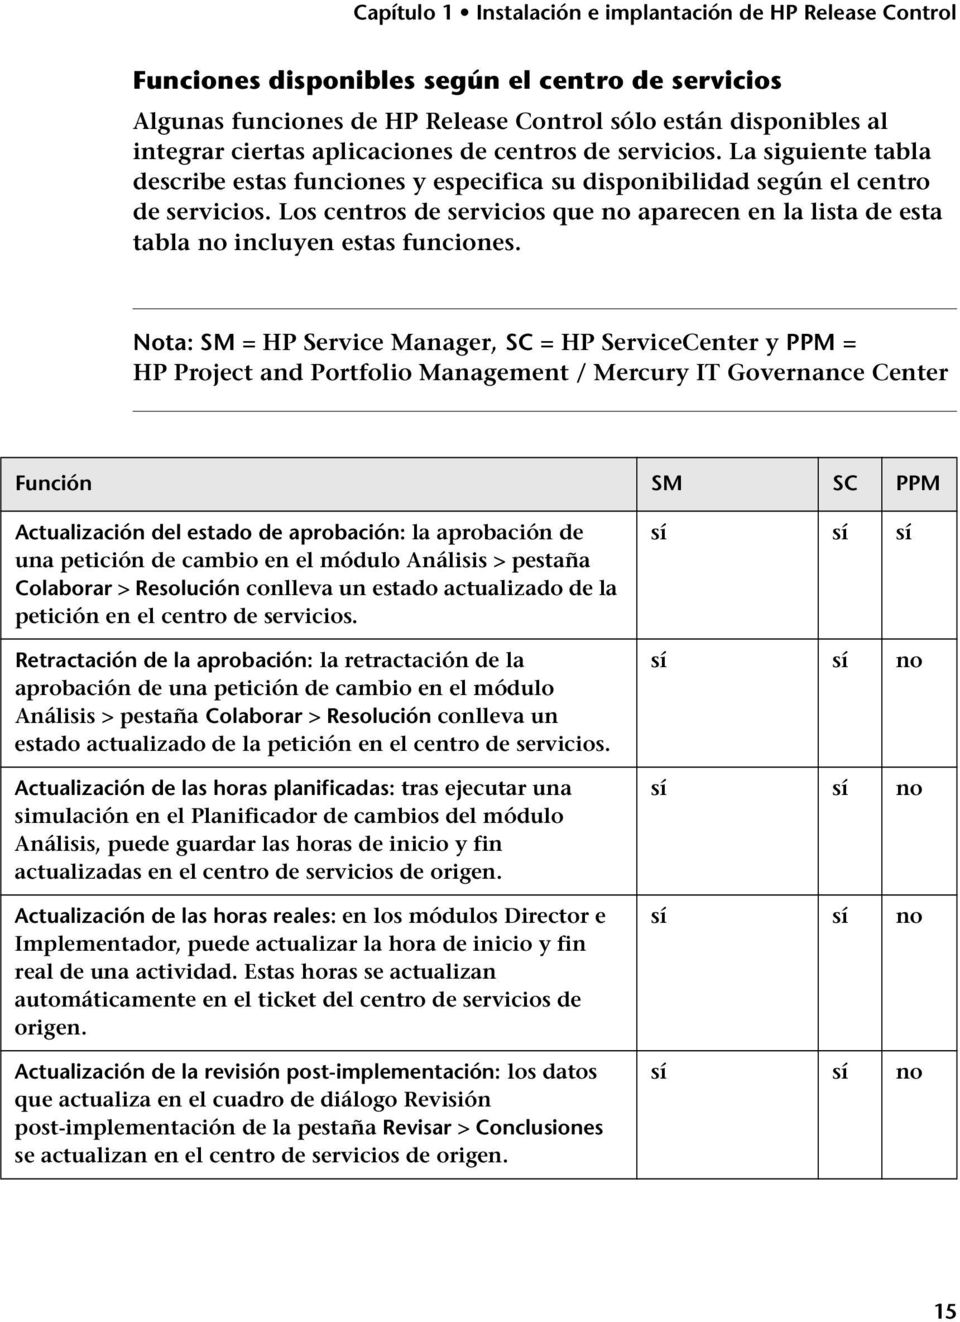 Nota: SM = HP Service Manager, SC = HP ServiceCenter y PPM = HP Project and Portfolio Management / Mercury IT Governance Center Función SM SC PPM Actualización del estado de aprobación: la aprobación